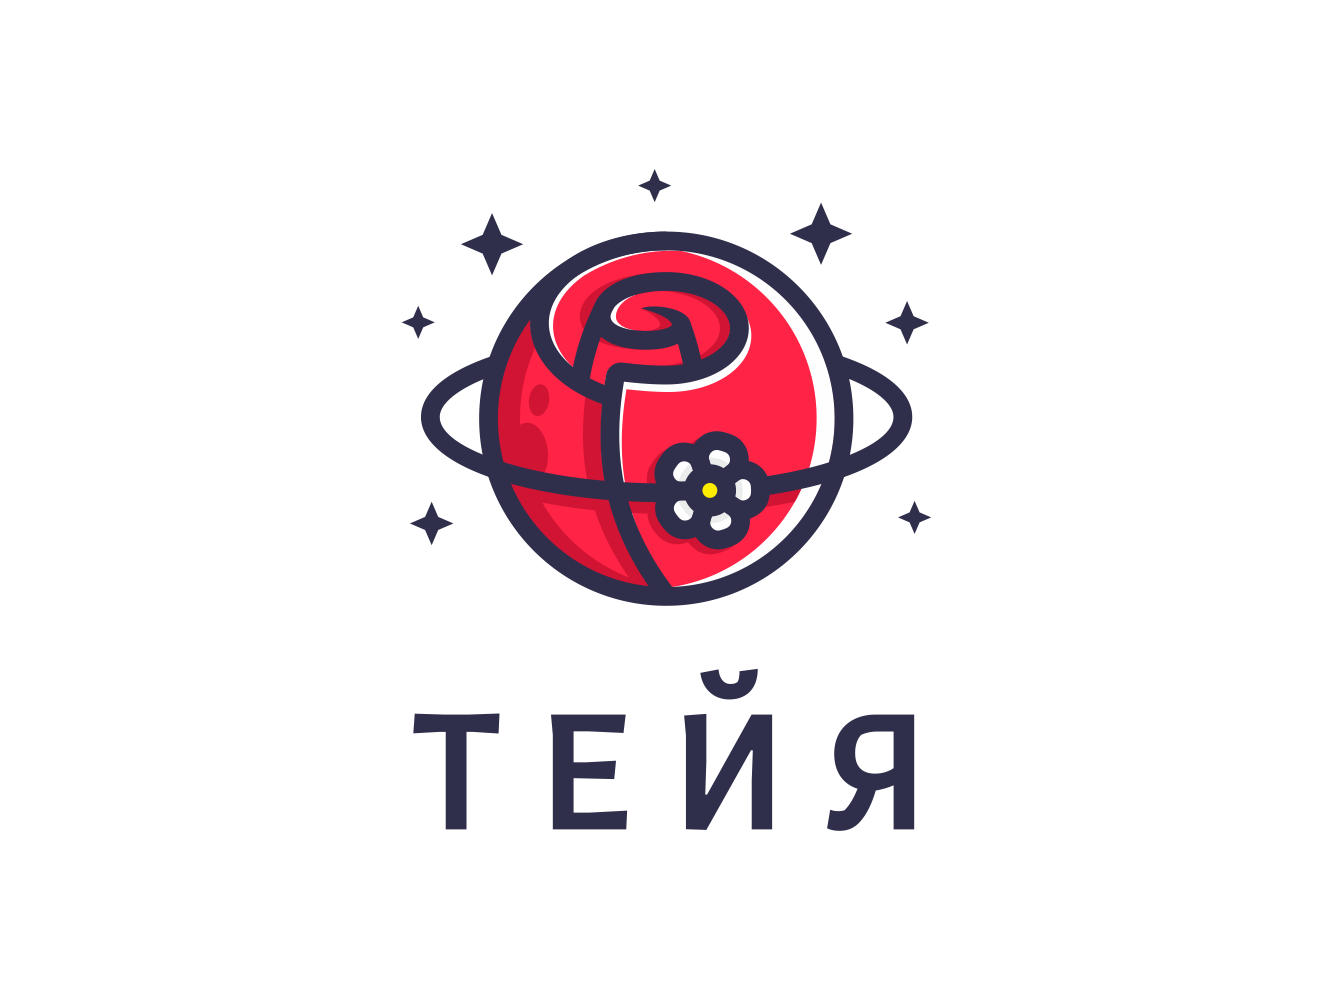 Teya daisy rose satellite stars cosmos planet delivery bouquet flower illustration sign logo